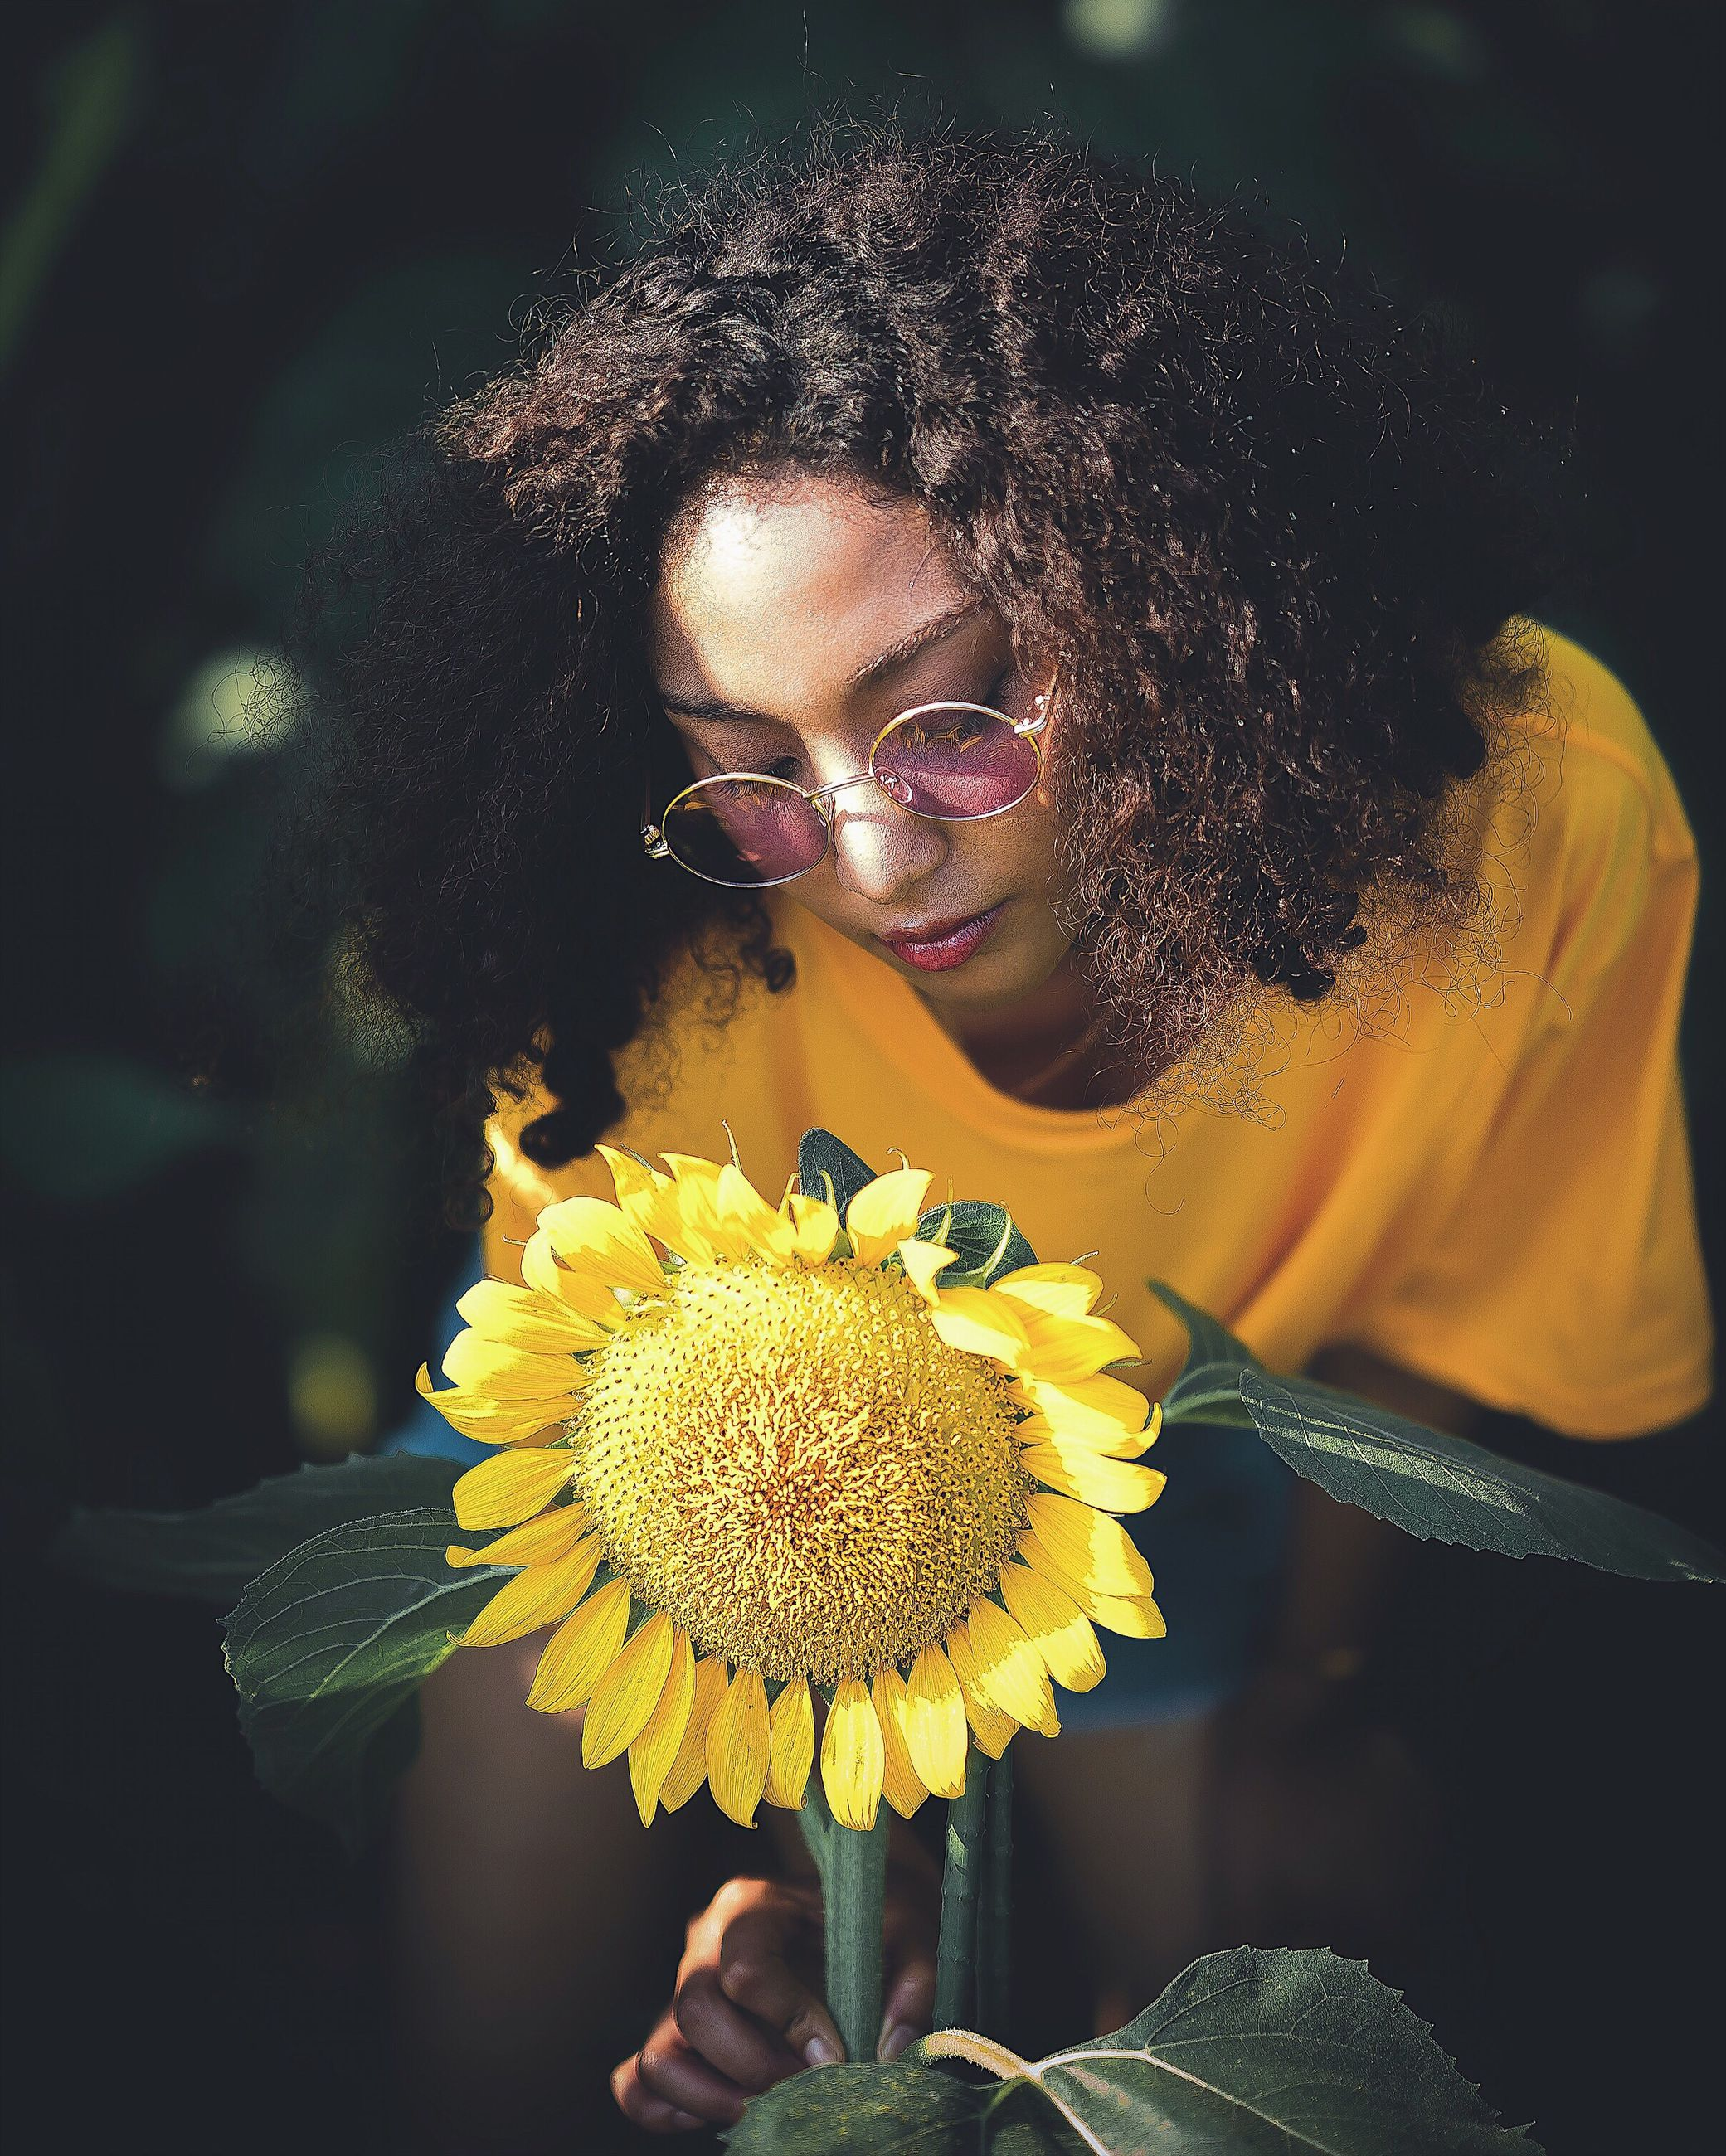 flower, curly hair, yellow, one person, young women, looking at camera, young adult, portrait, real people, nature, outdoors, beauty in nature, eyeglasses, freshness, beautiful woman, fragility, smiling, growth, women, day, close-up, flower head, people